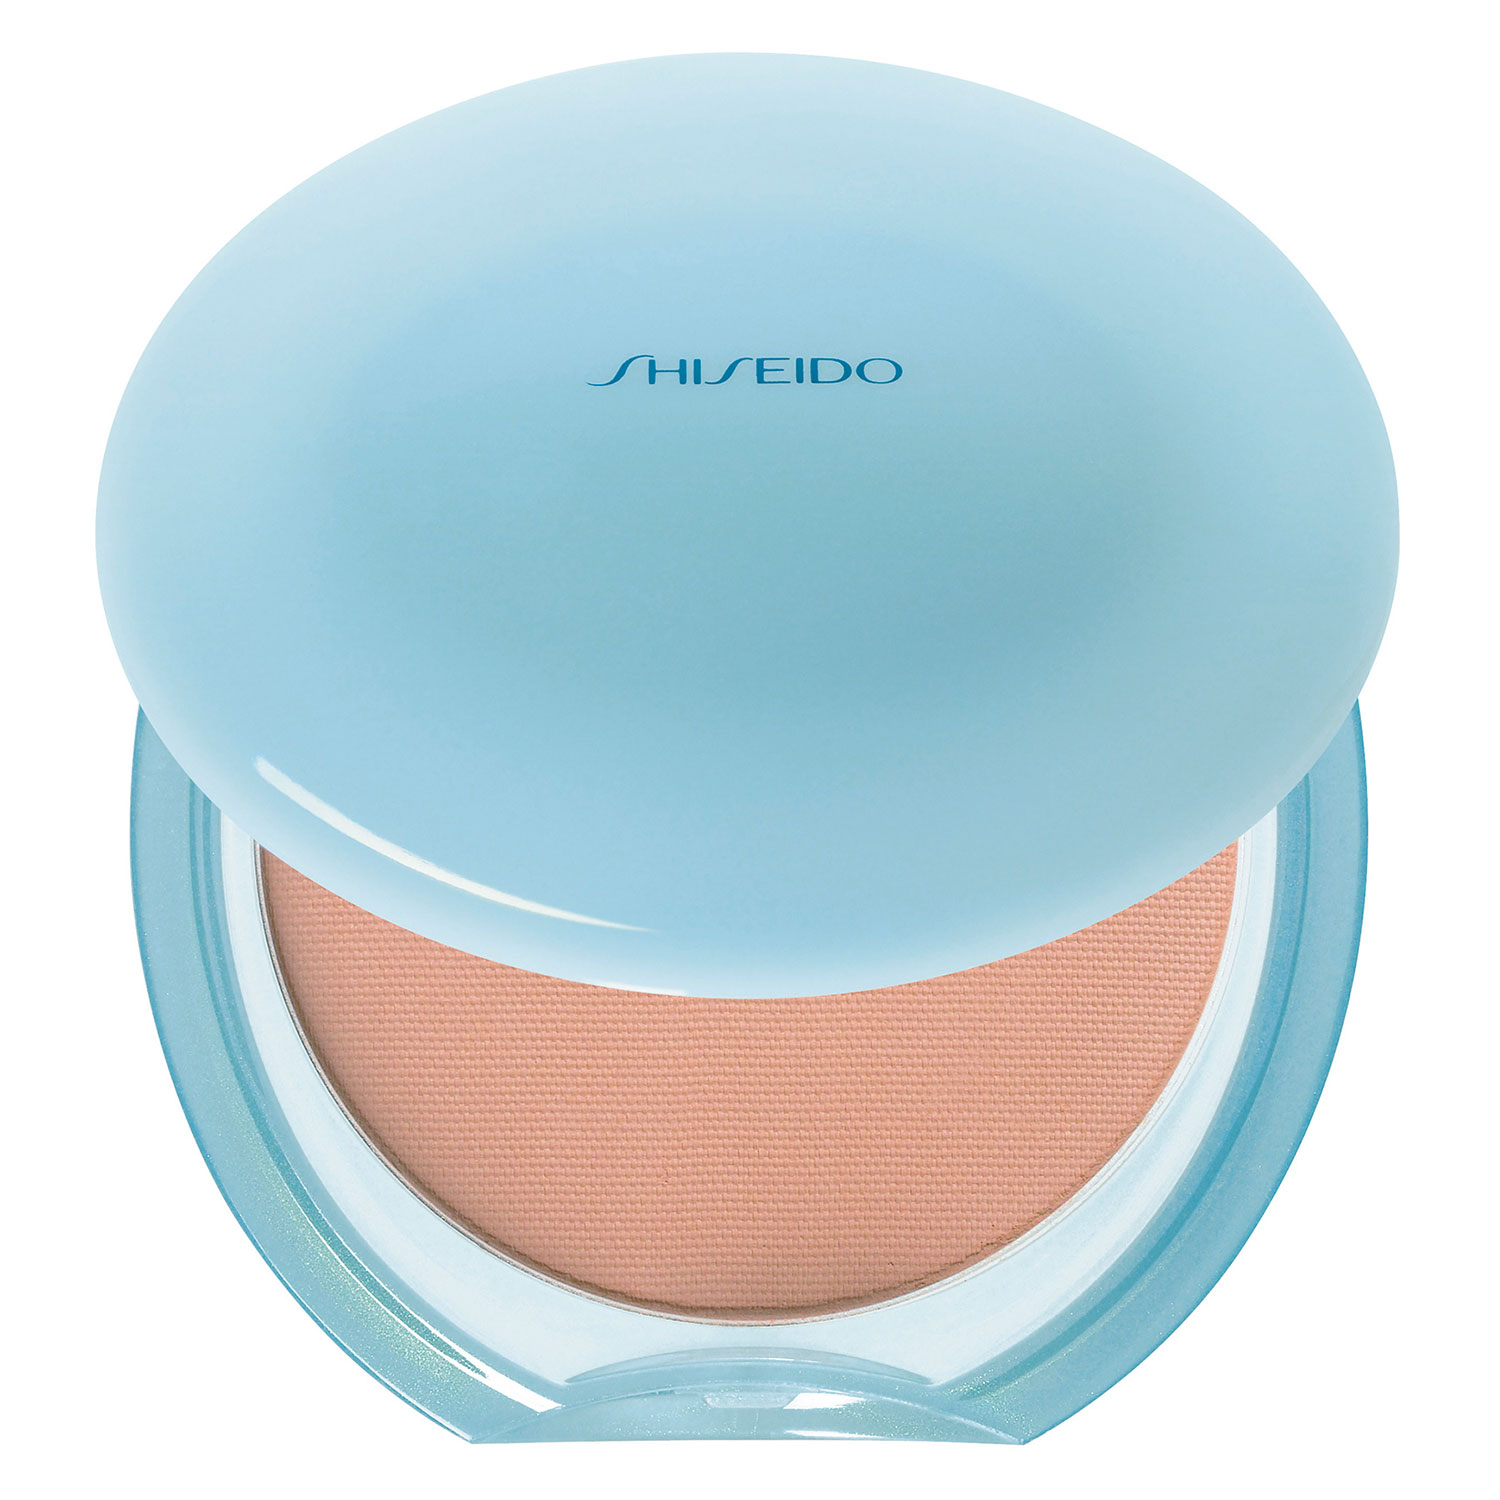 Pureness - Matifying Compact Oil-free Foundation Light Ivory 10